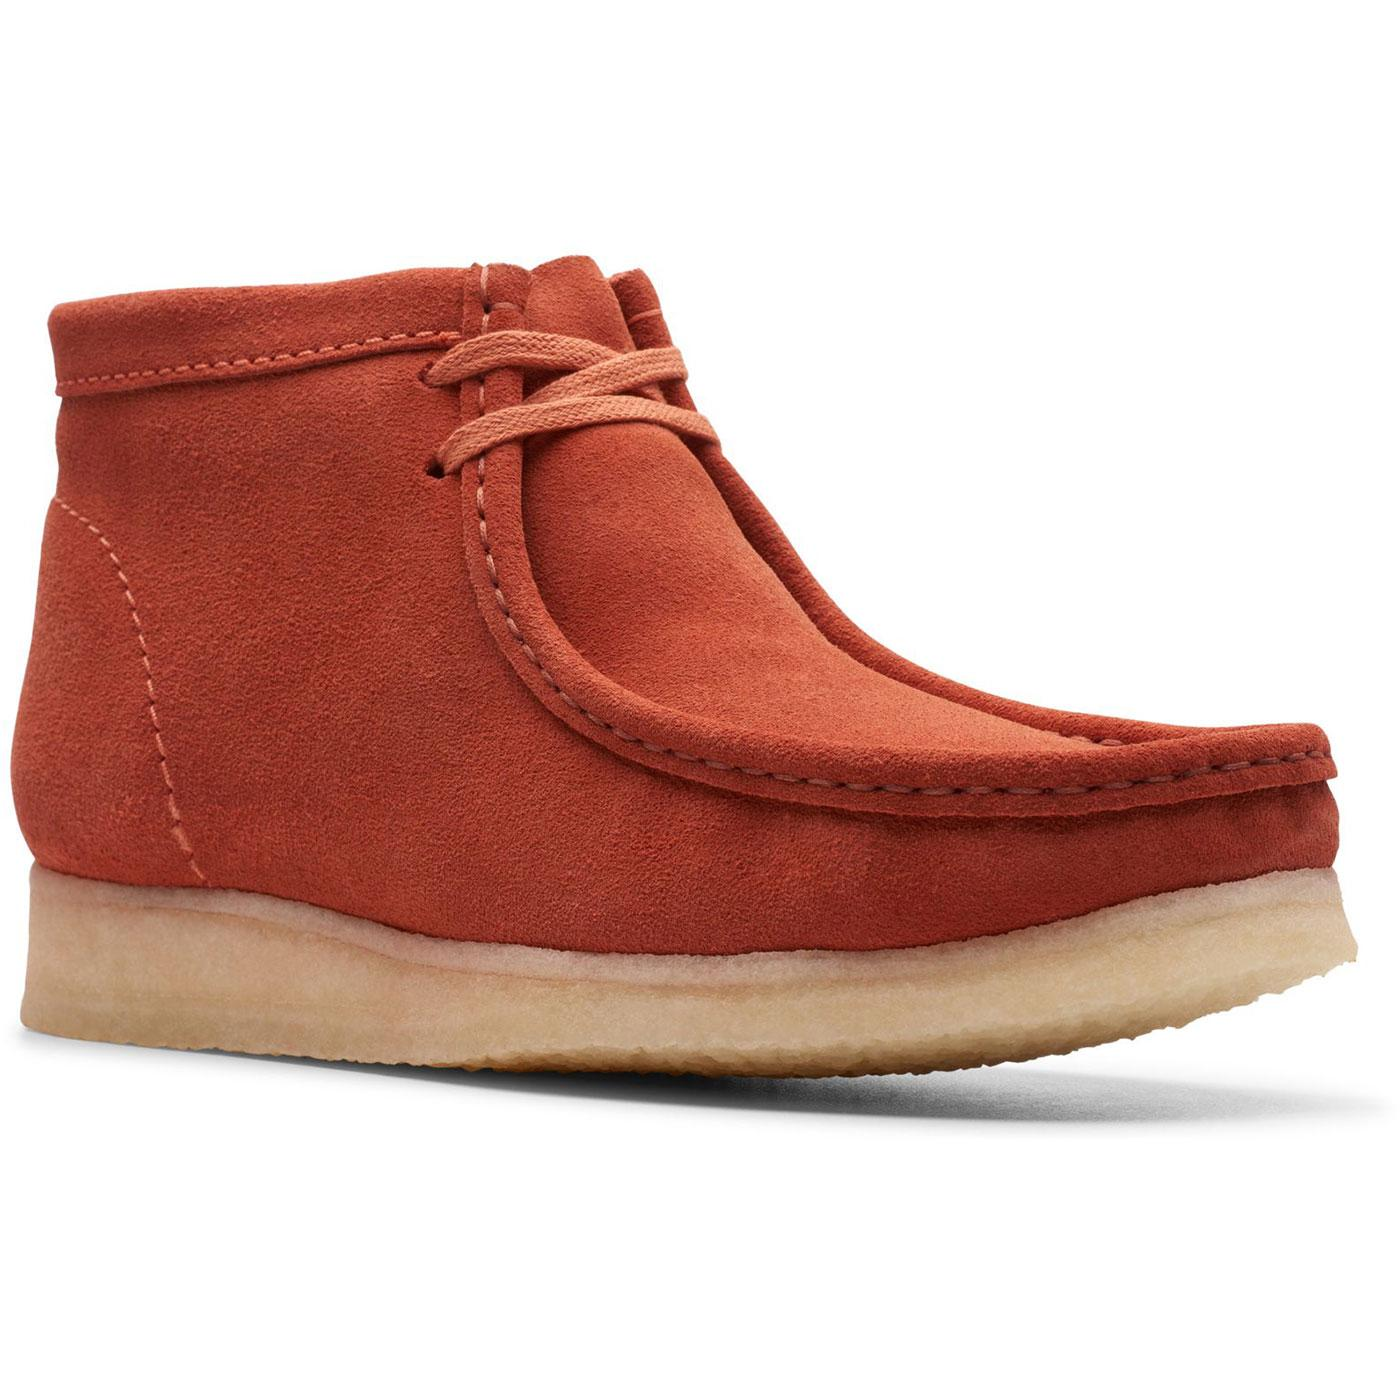 Wallabee Boots CLARKS ORIGINALS Mod Suede Shoes BO